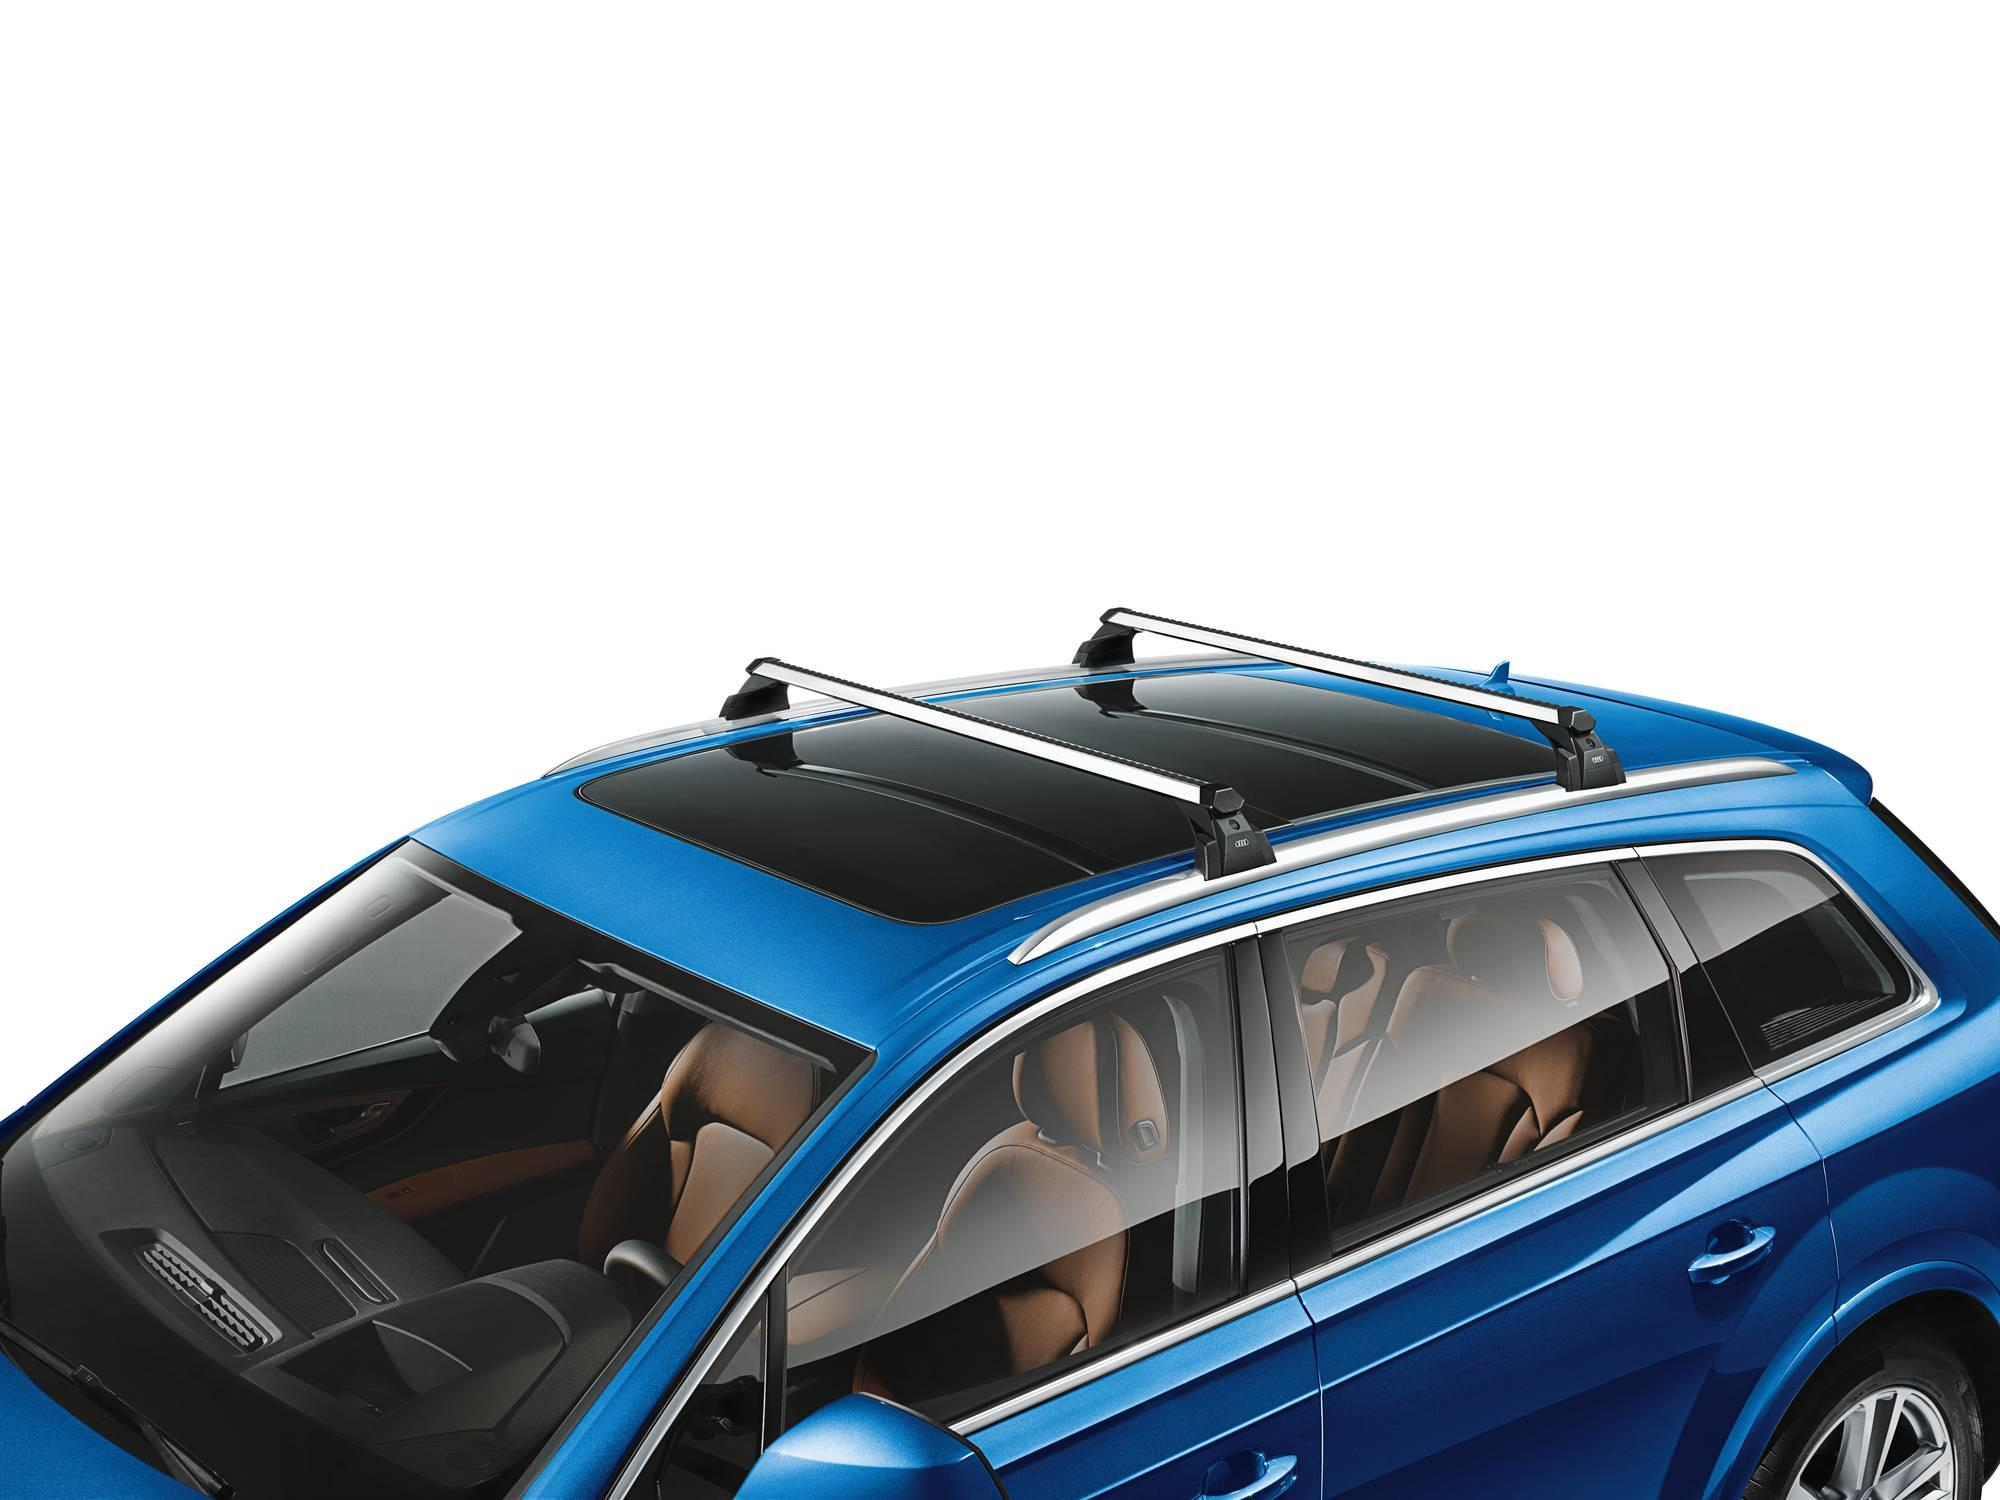 rack kamei carrier i racks fabia roof year for combi railing skoda